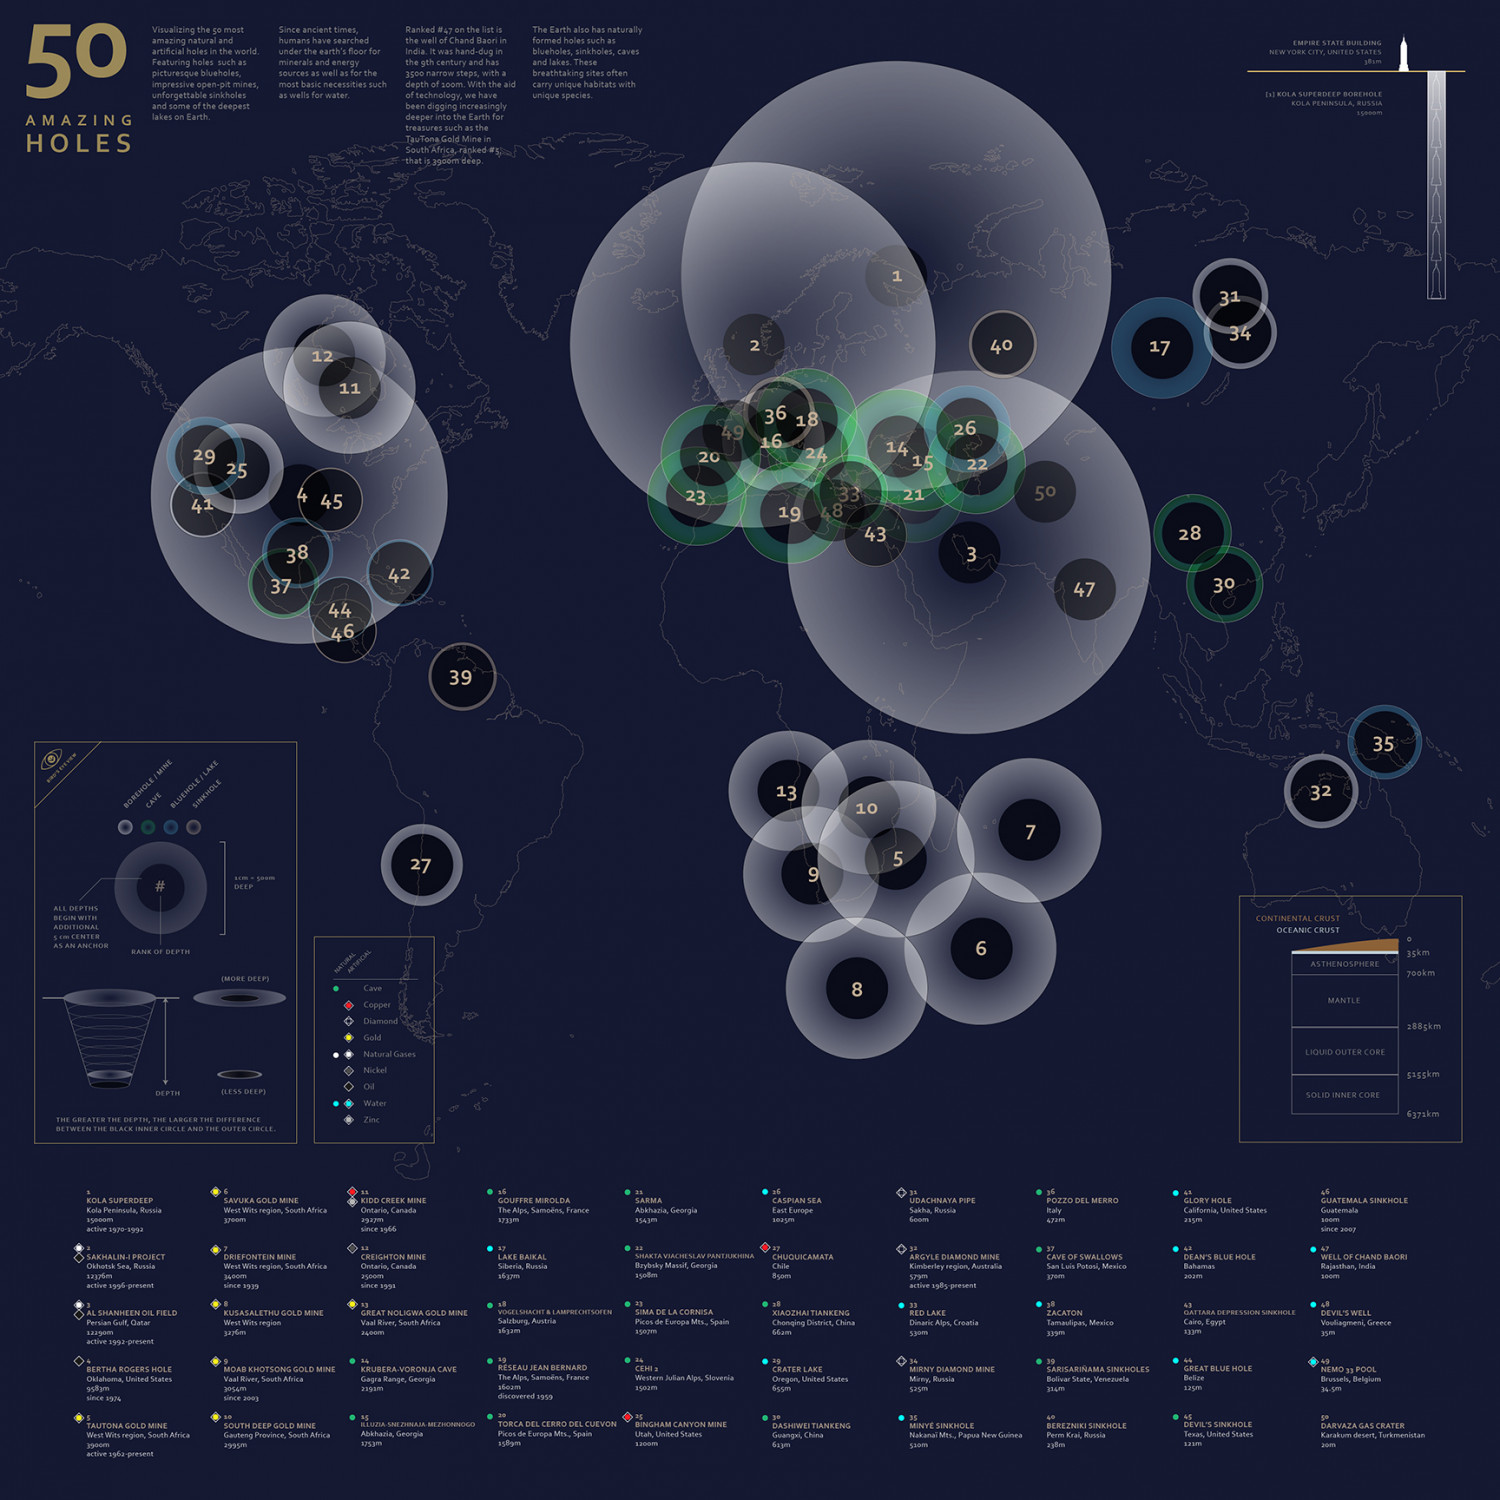 50 Amazing Holes Infographic